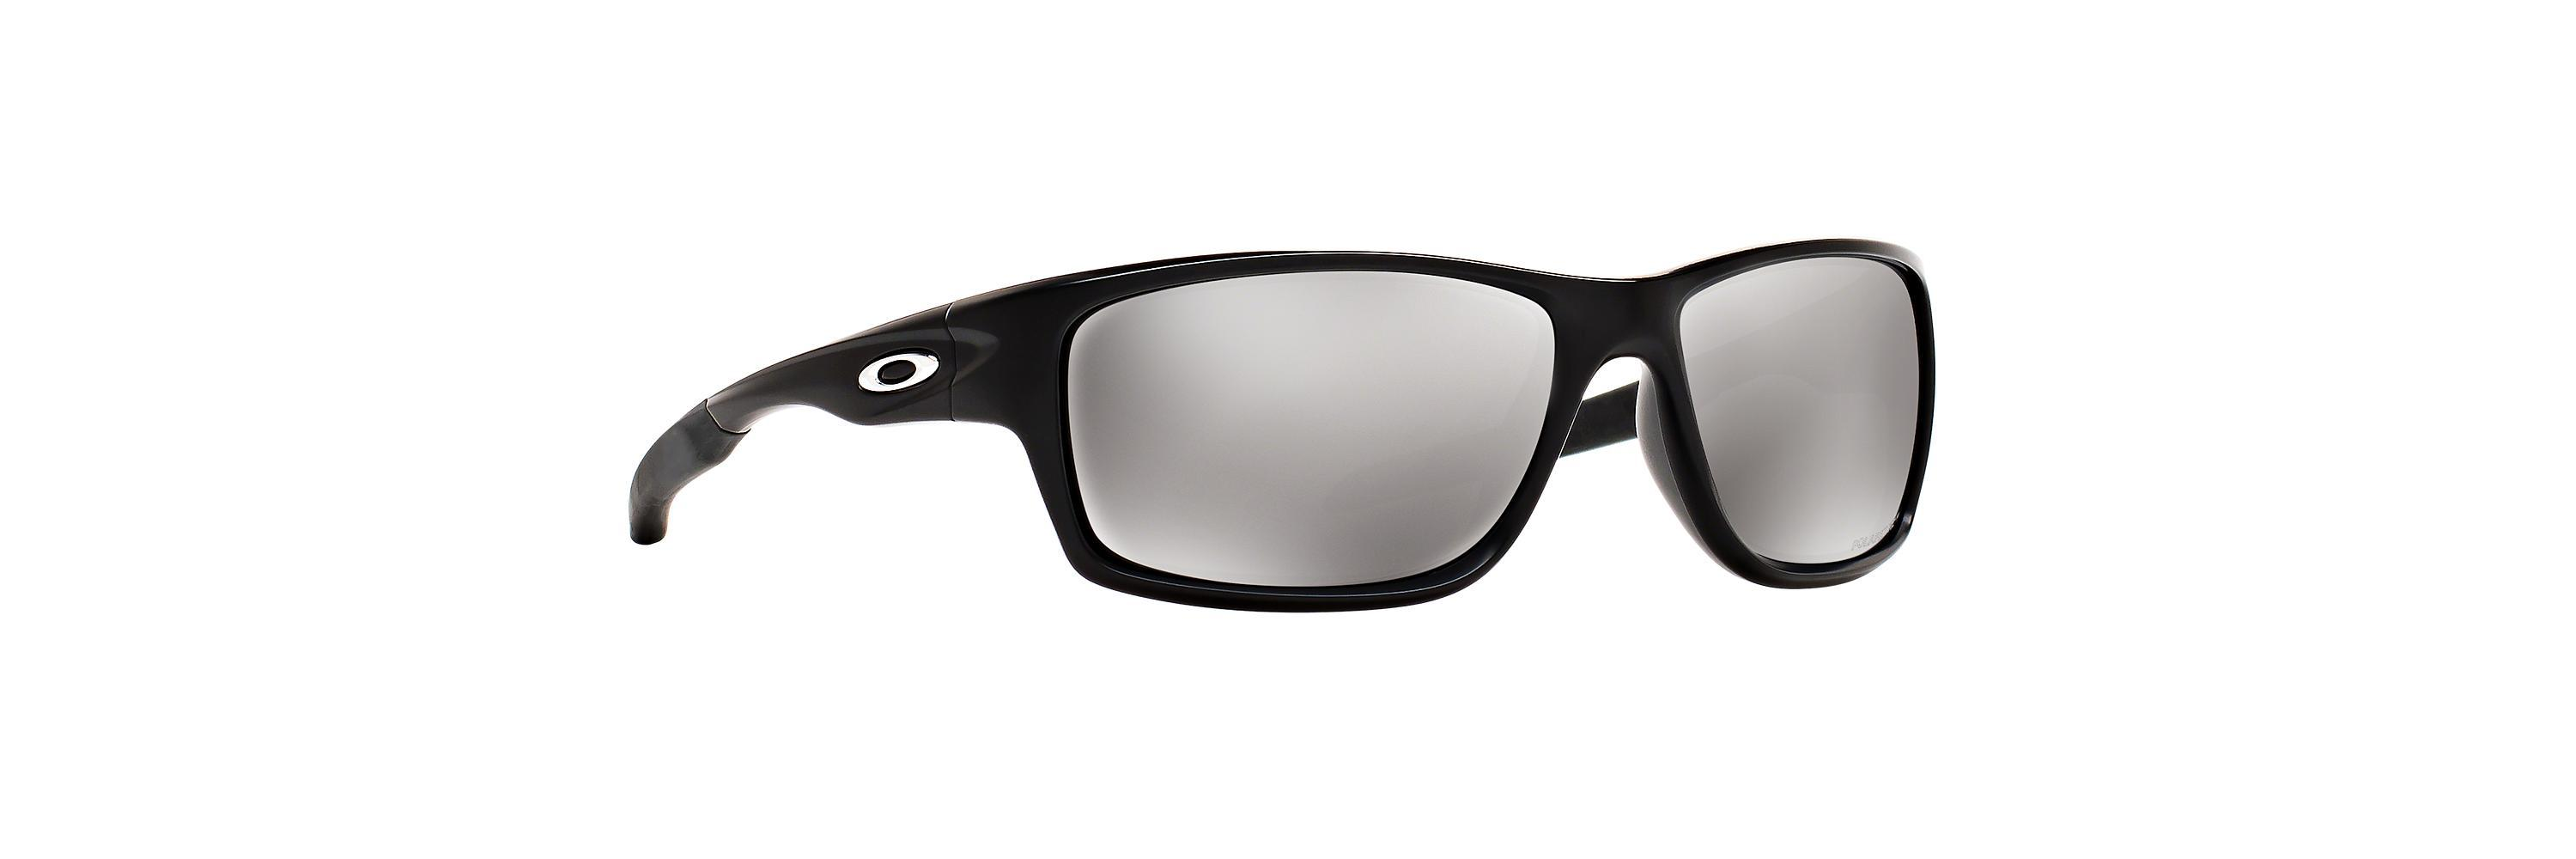 f34428c651 Lyst - Oakley Oo9225 Canteen Only At Sunglass Hut in Black for Men